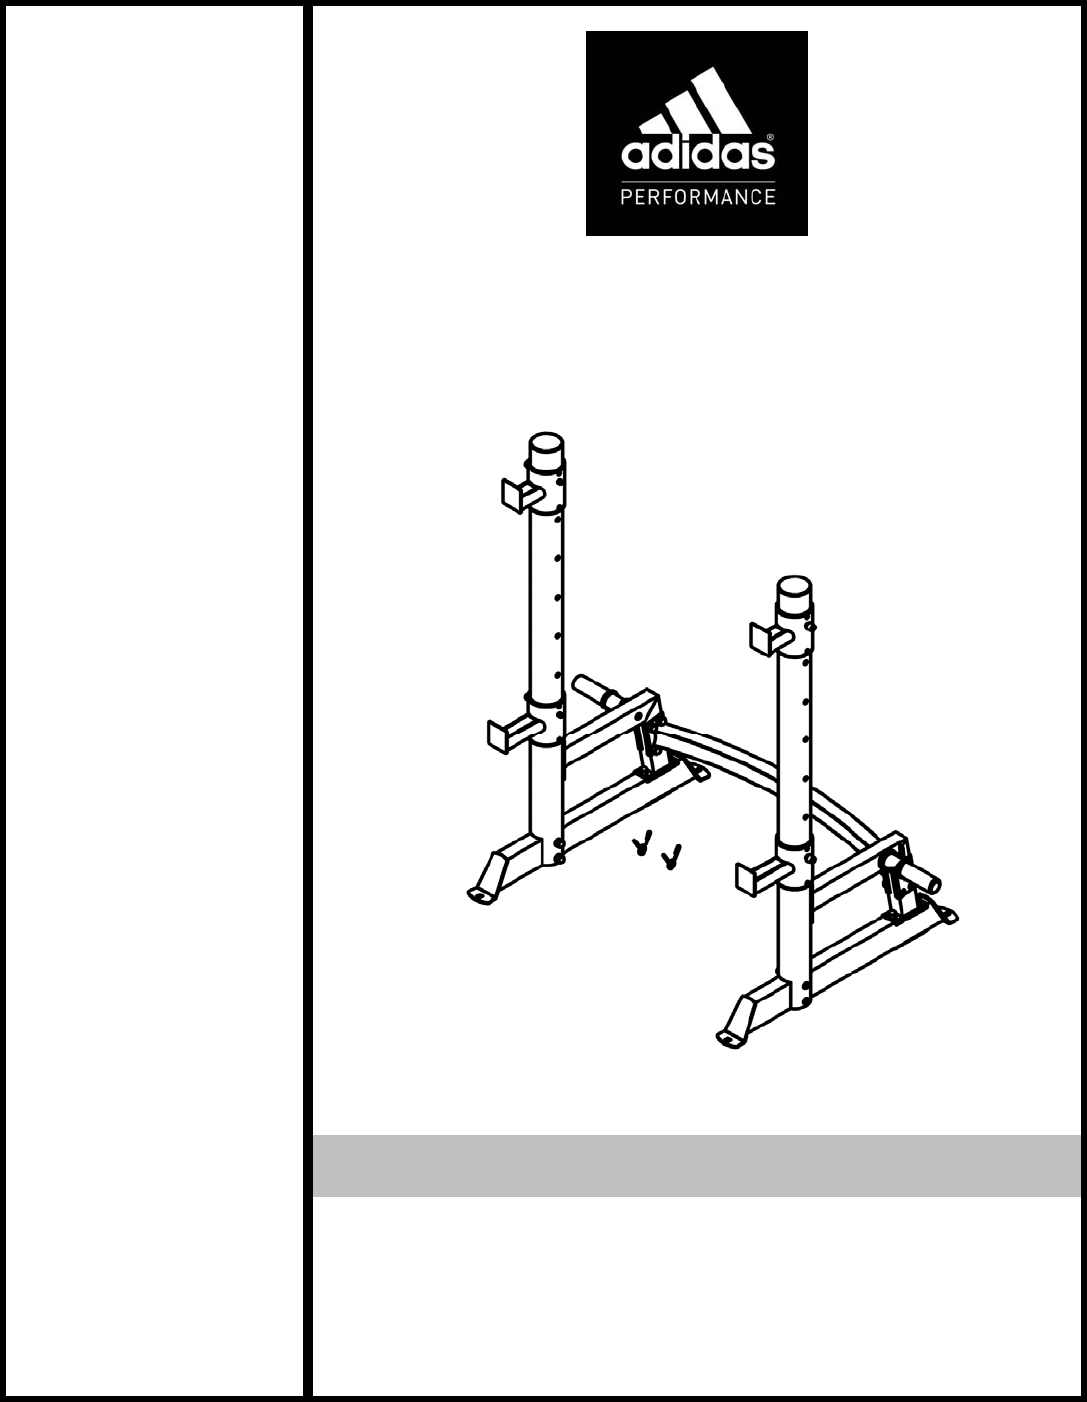 Download Impex Fitness Equipment ADI-10242-I manual and